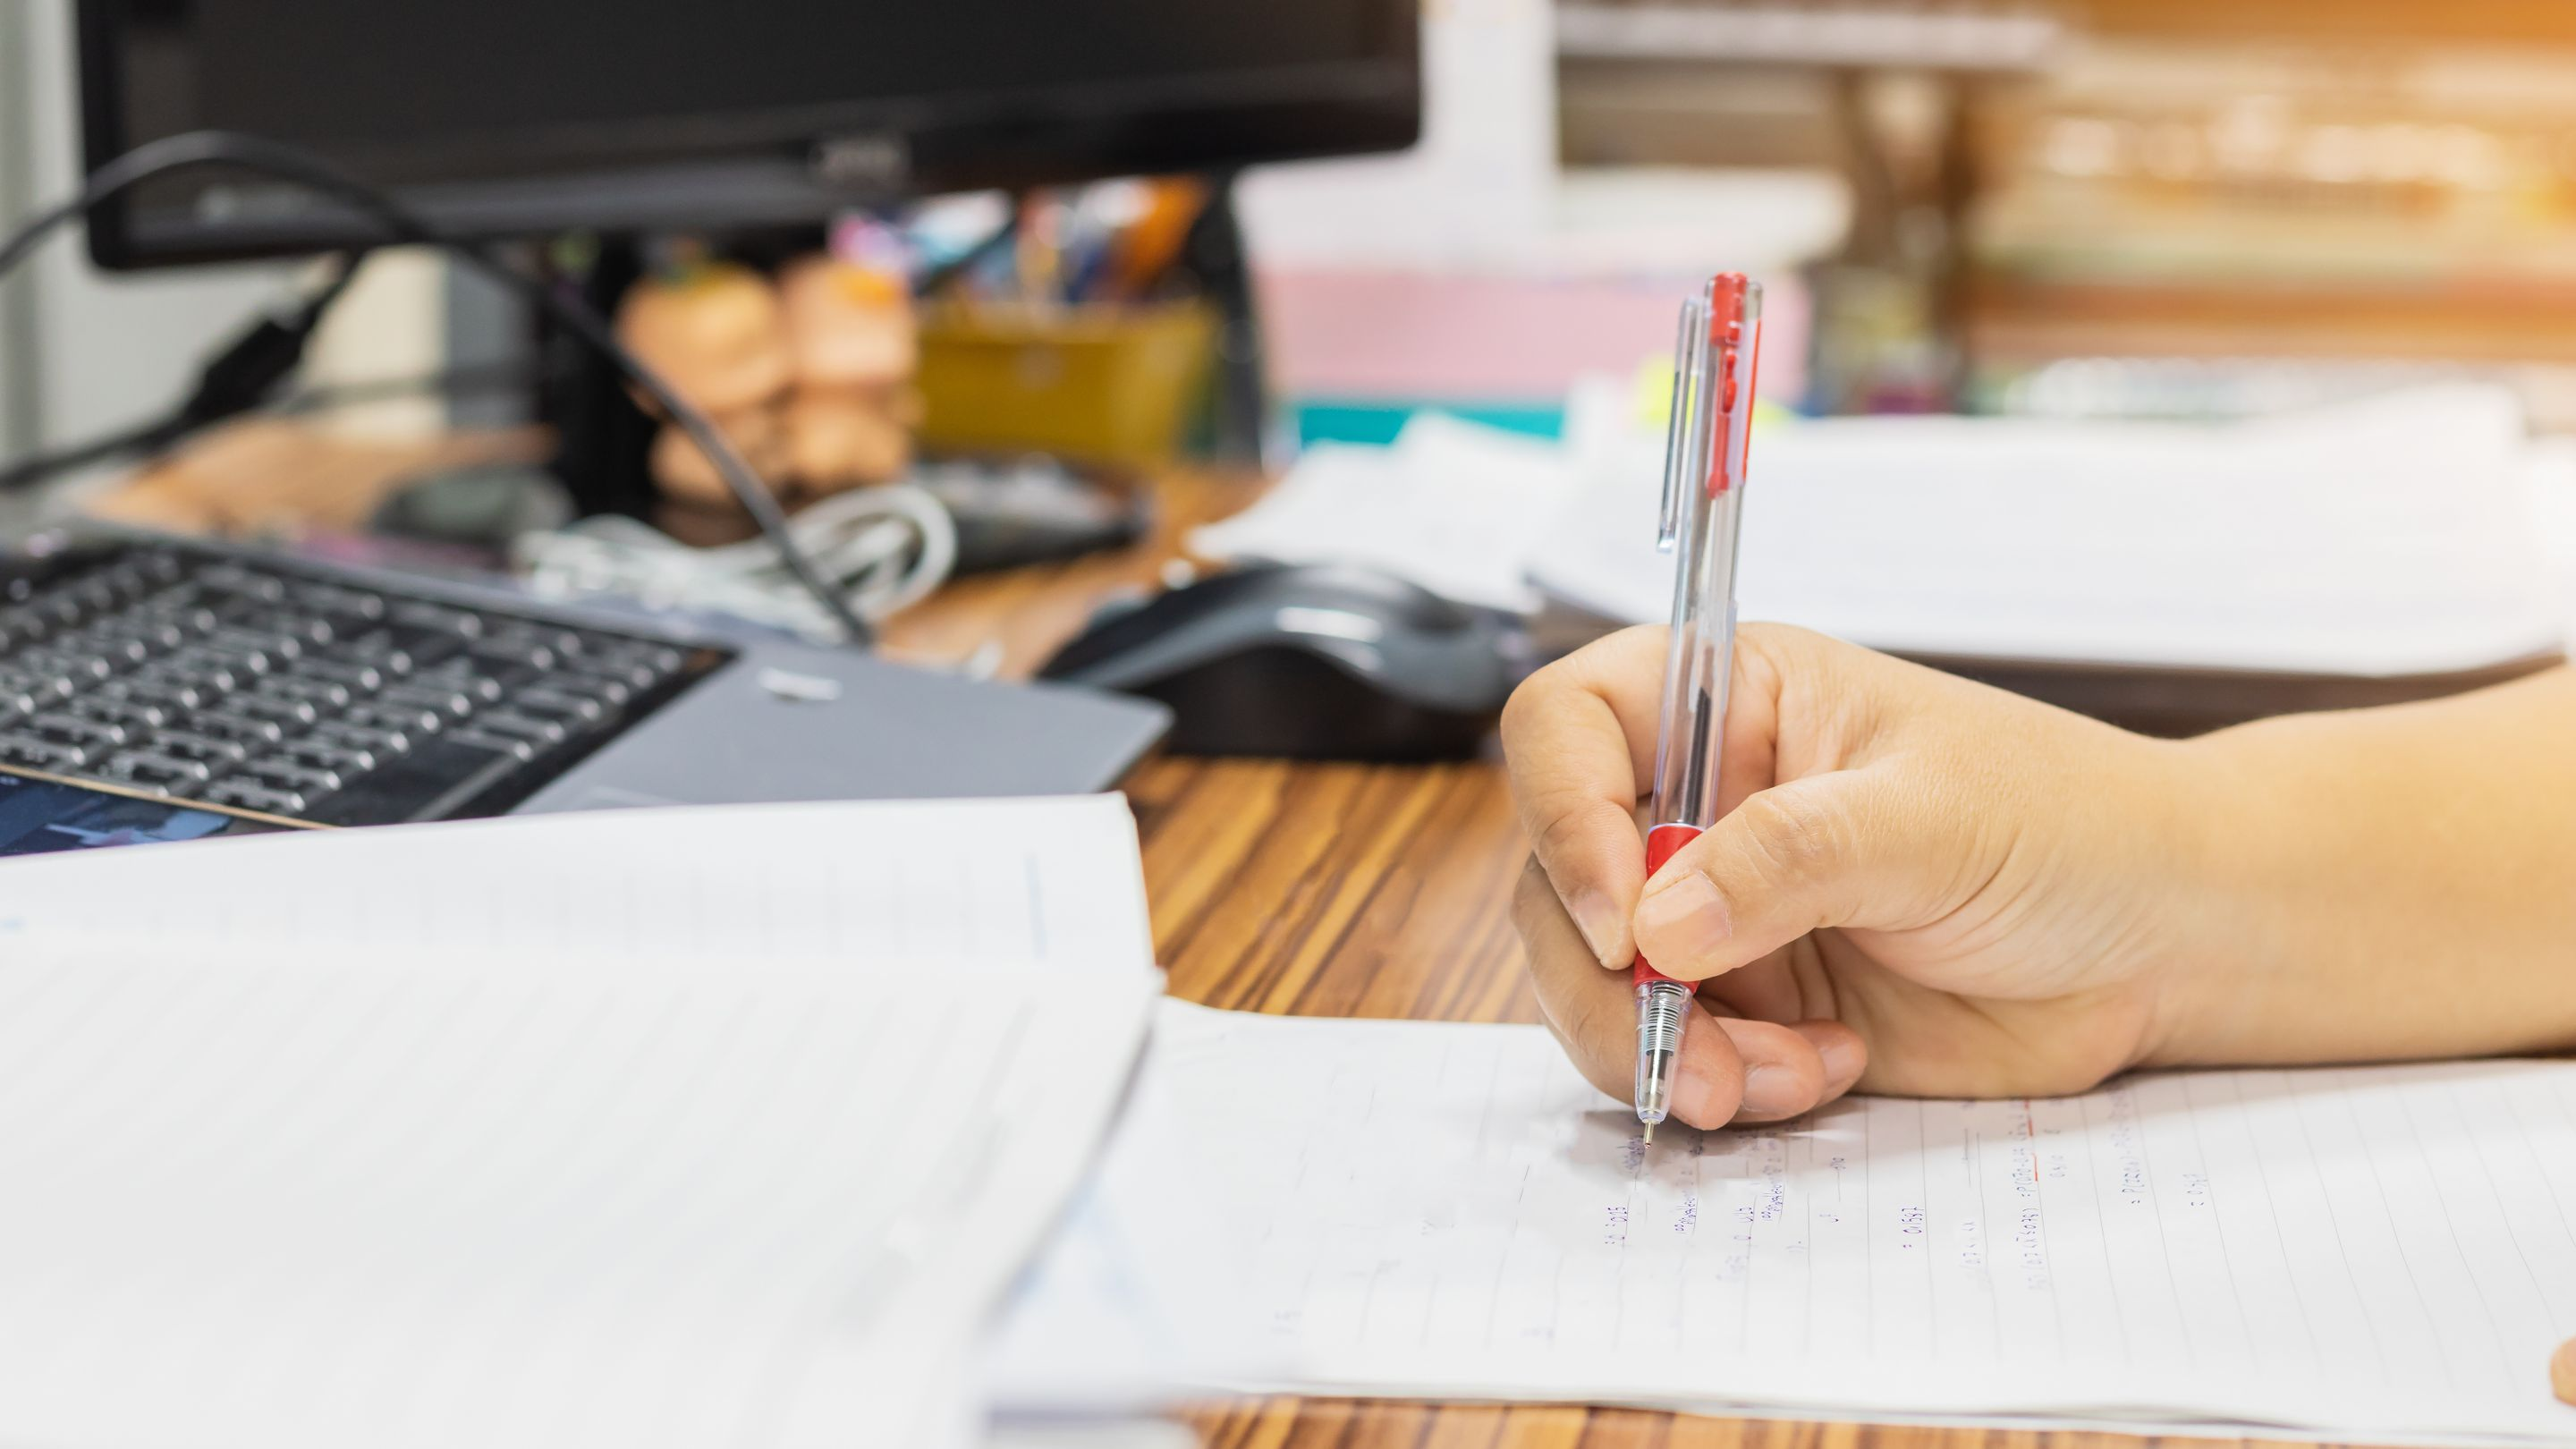 6 Tips for Managing the Feedback Workload